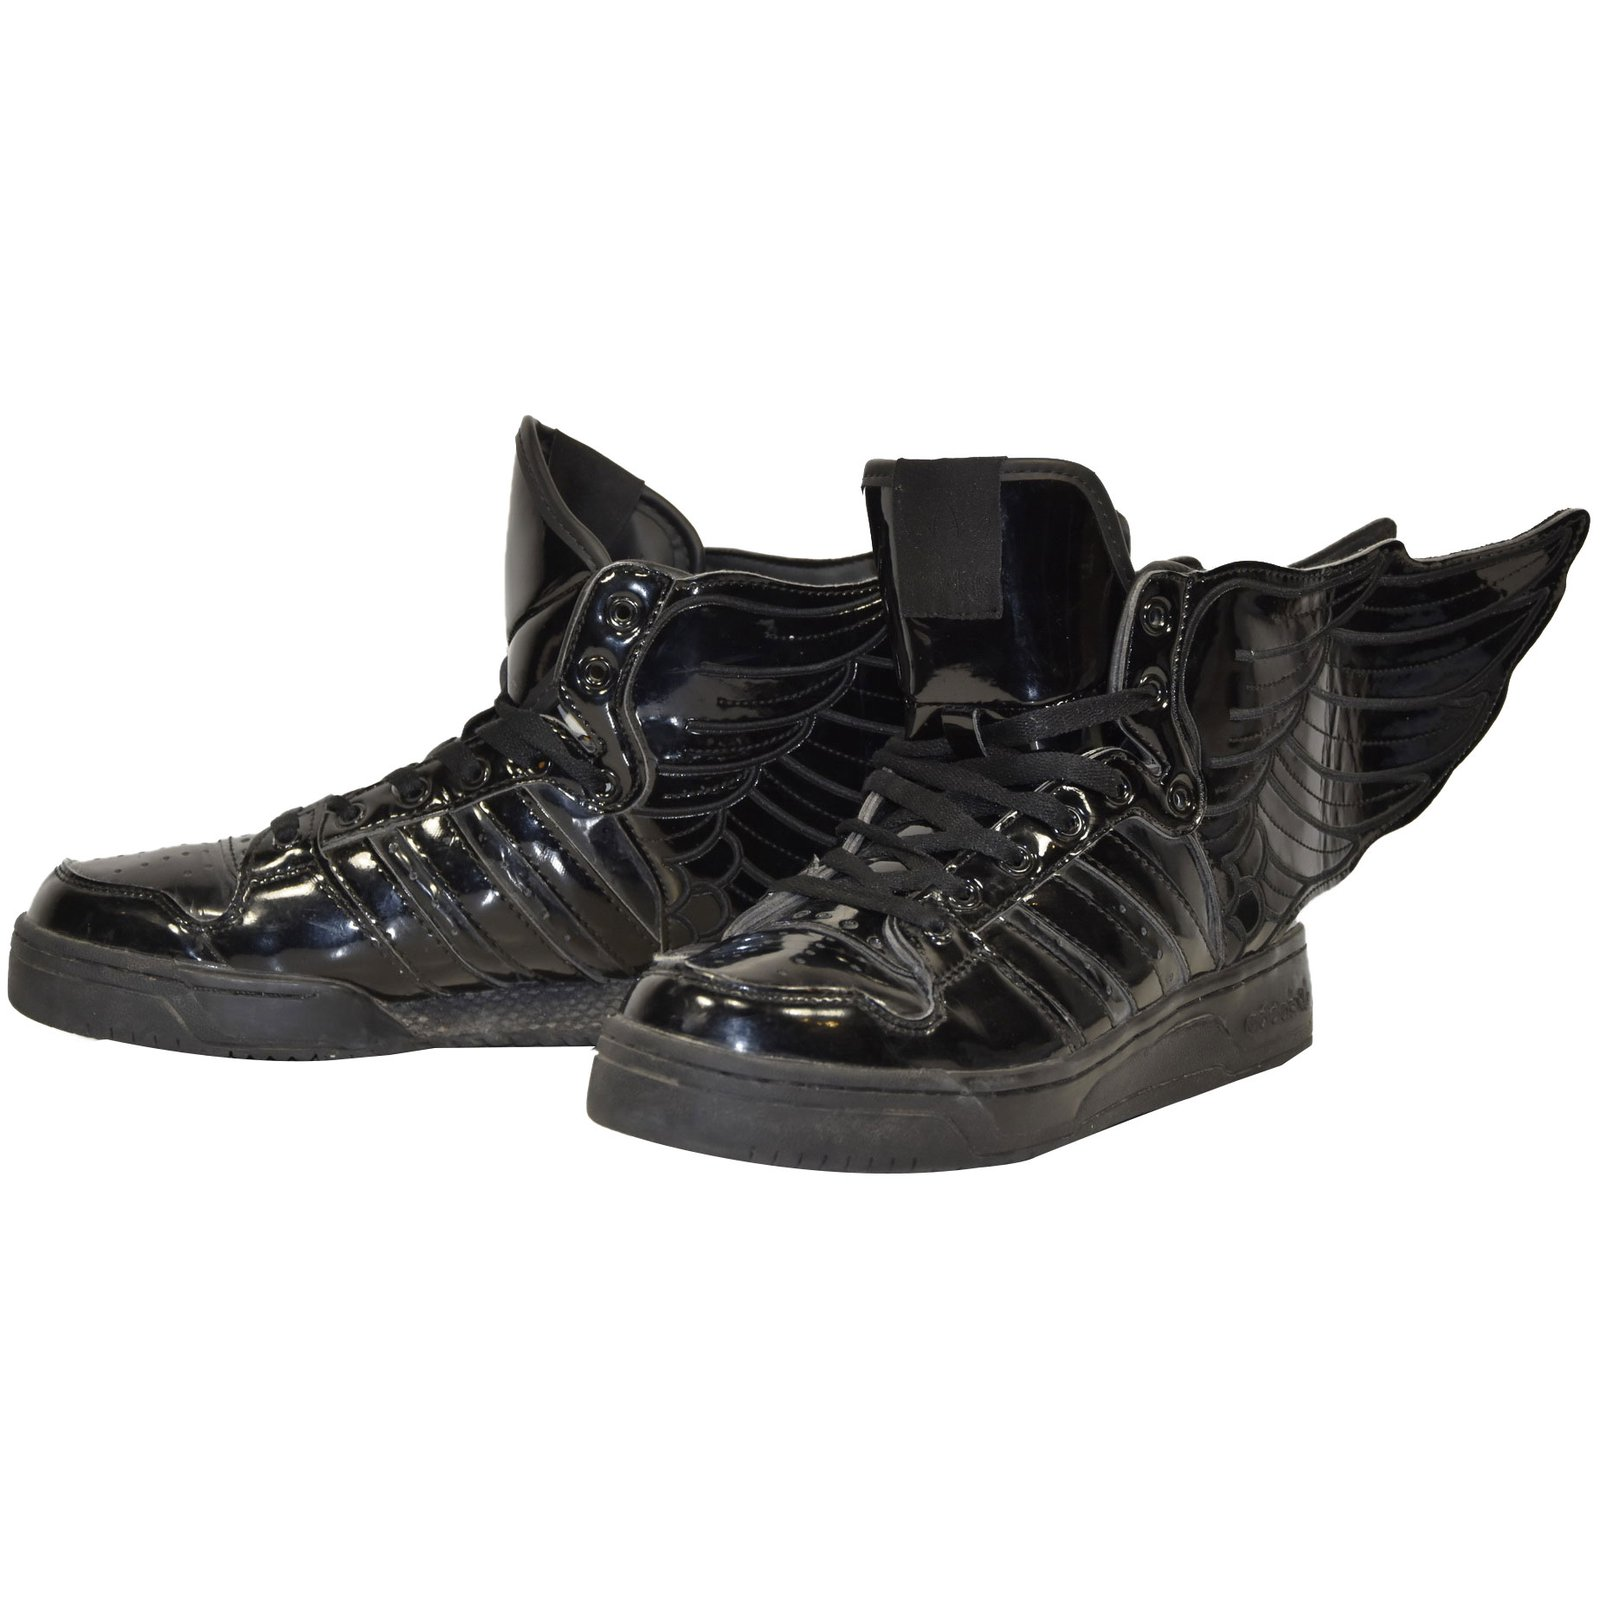 R069 BASKETS ADIDAS ORIGINALS JEREMY SCOTT WINGS T.39 13 UK 6